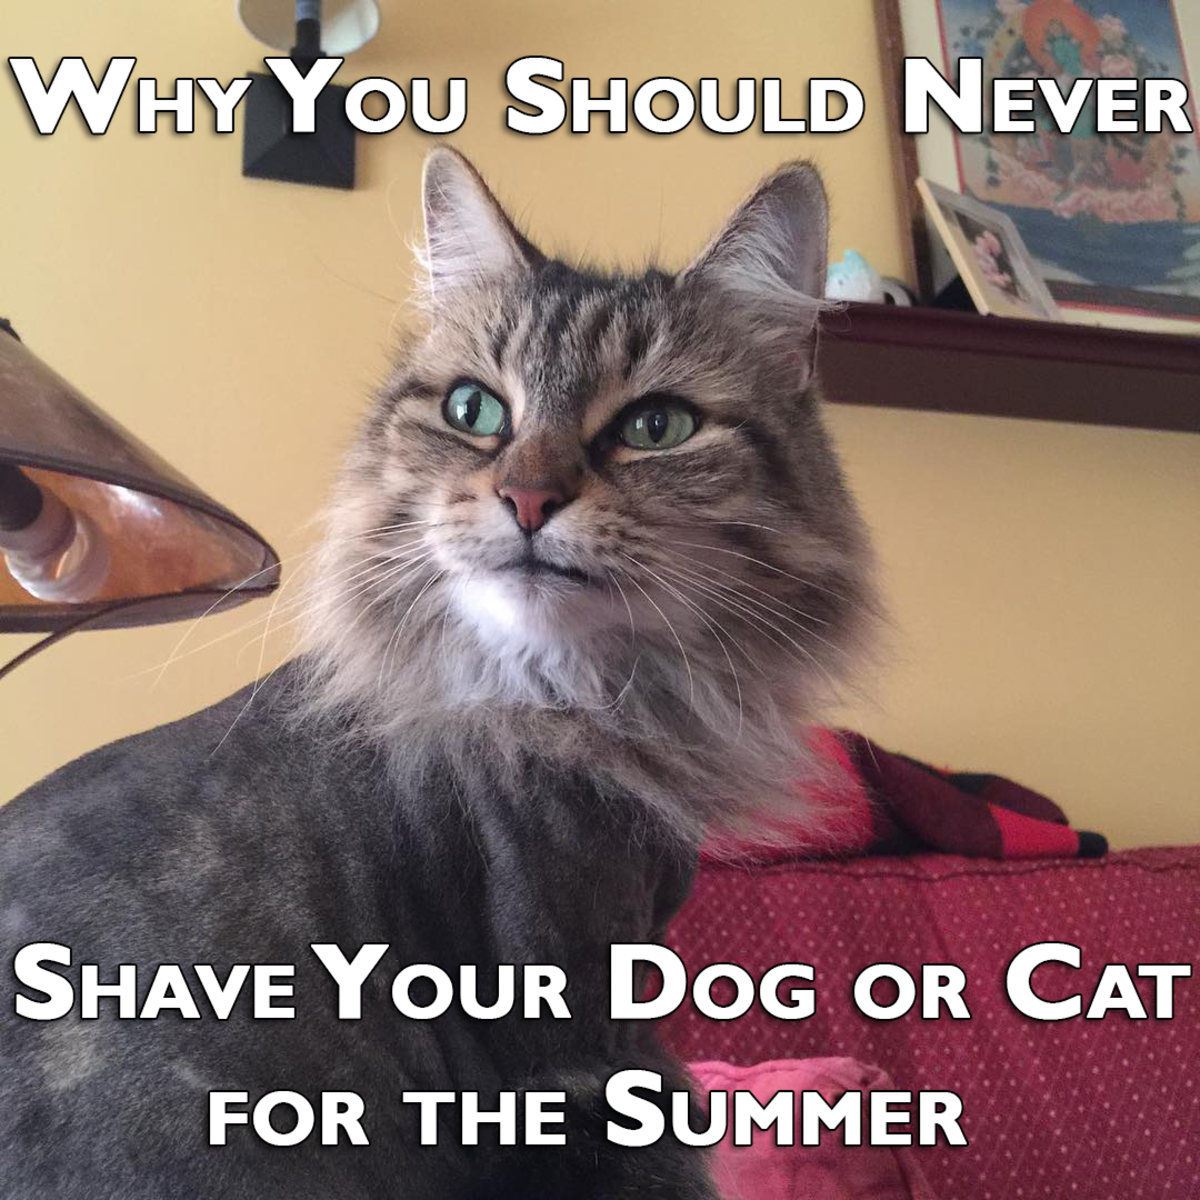 Why You Should Never Shave Your Dog Or Cat For The Summer